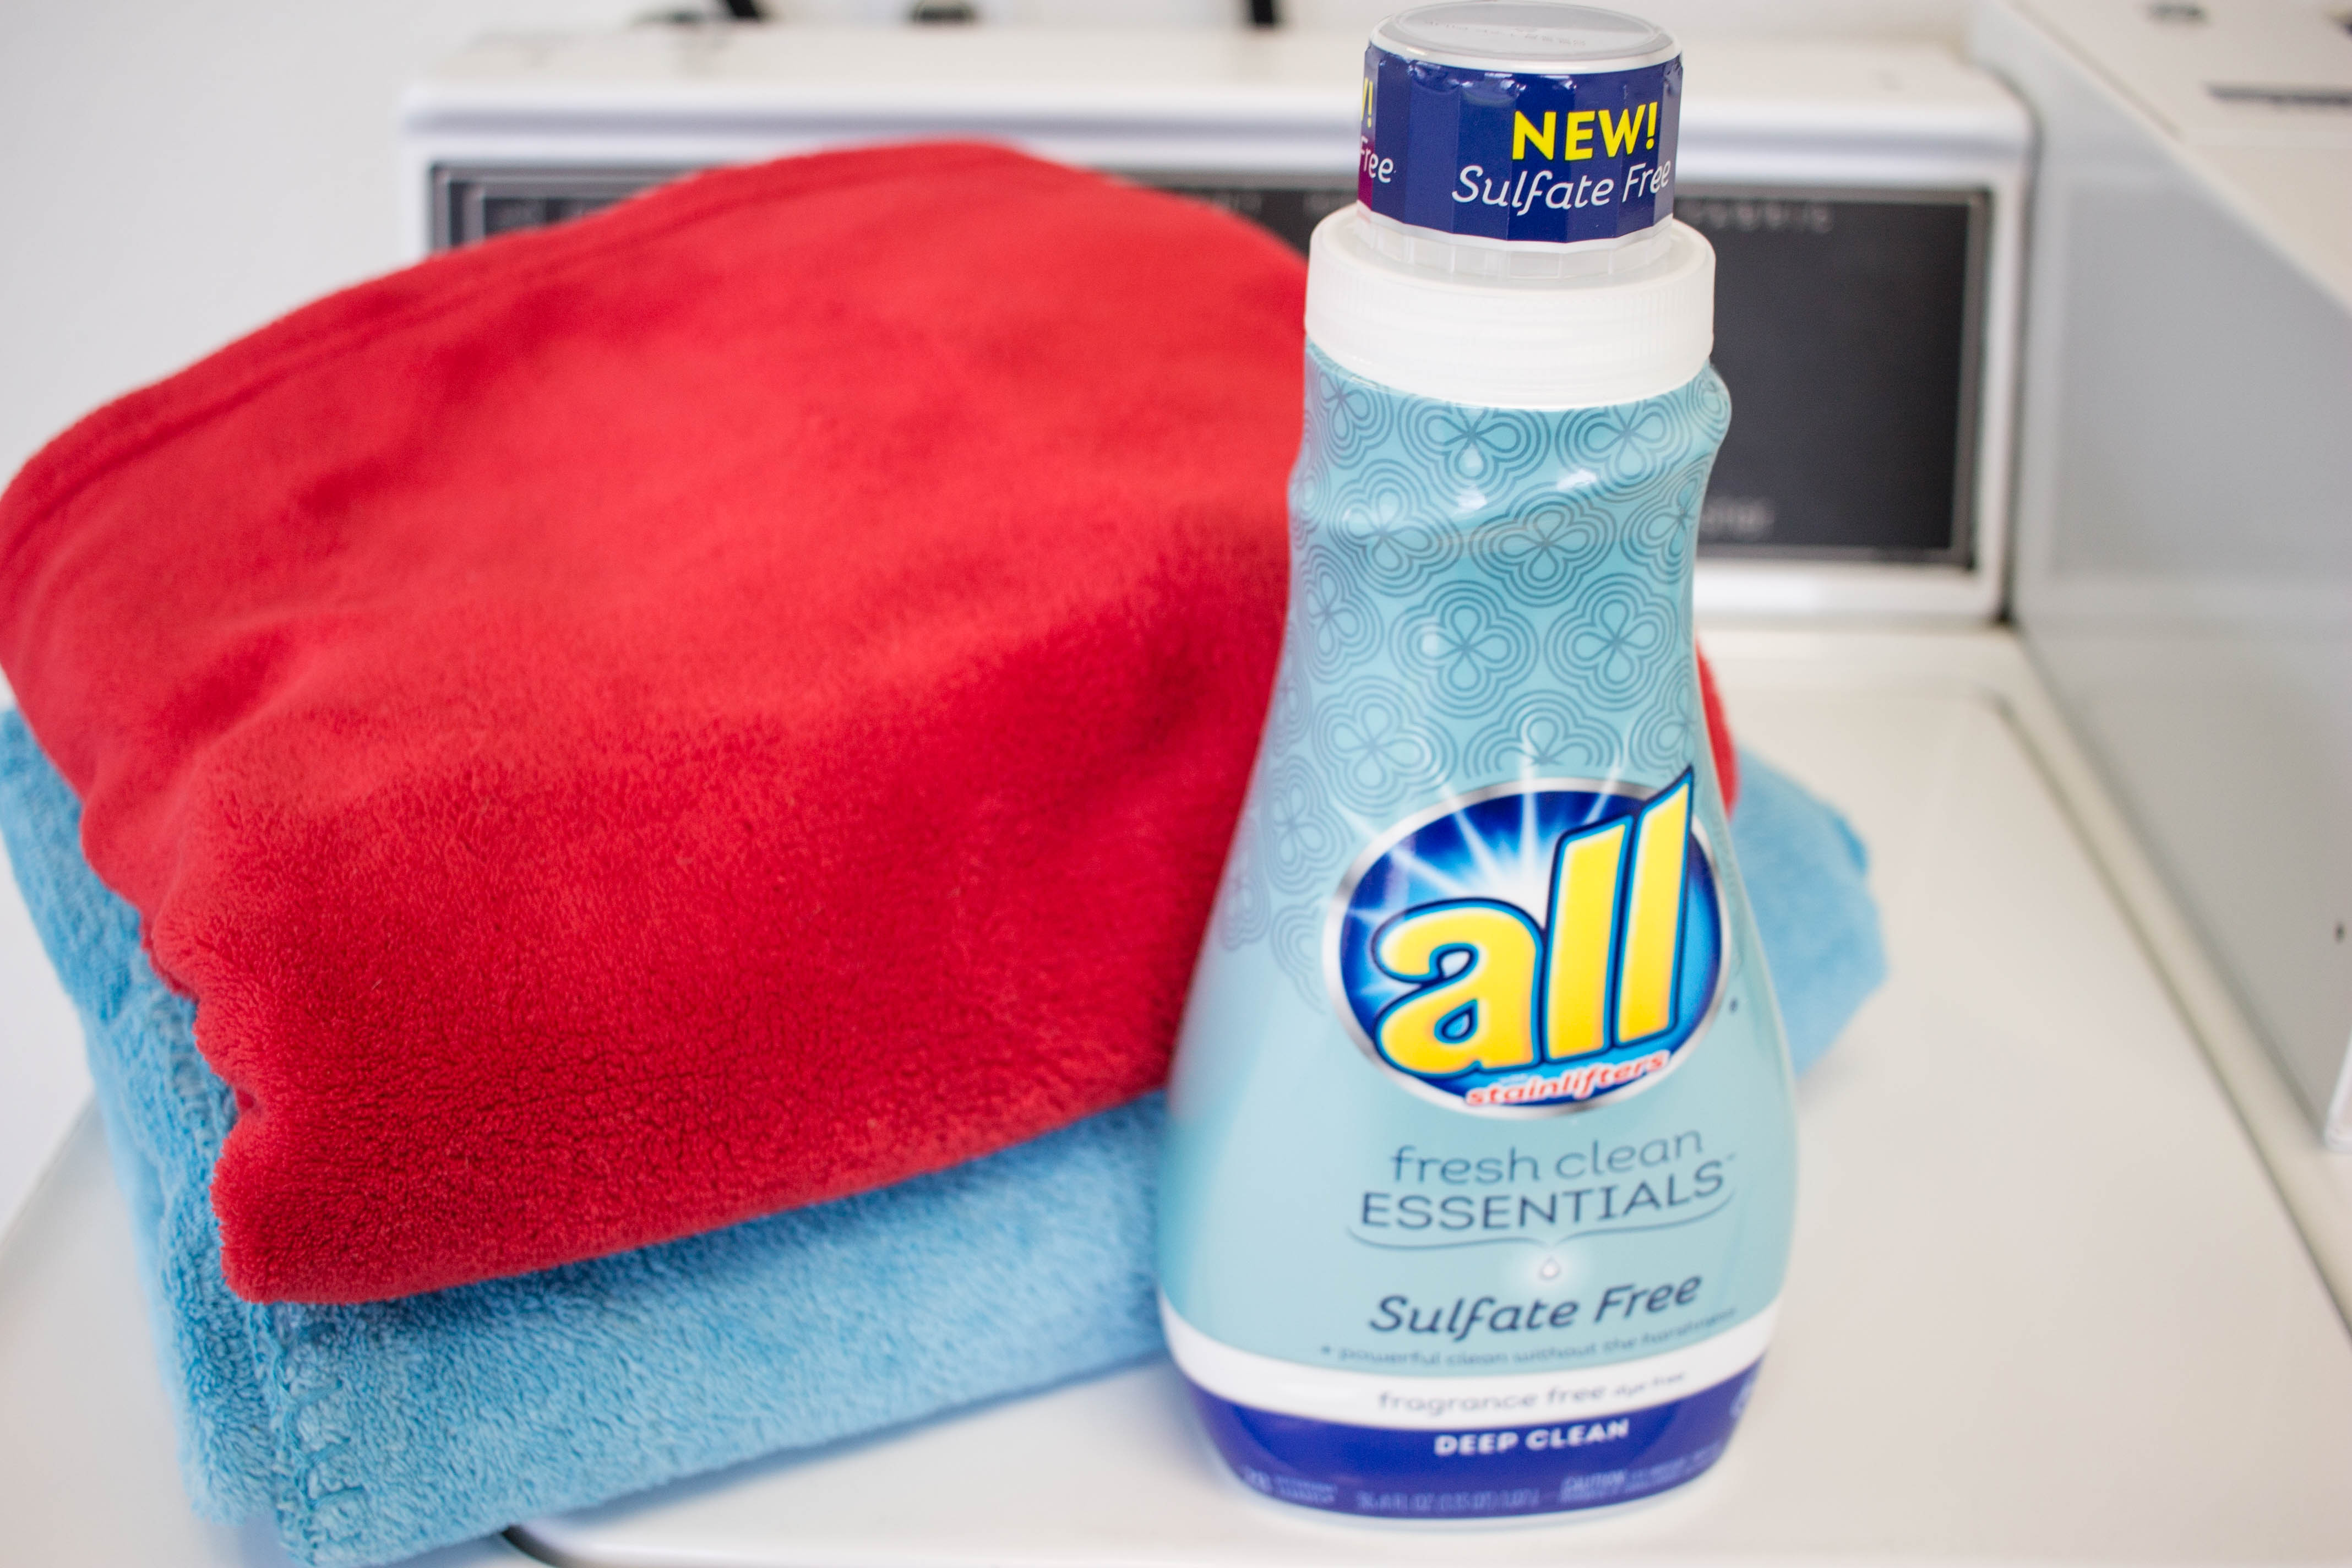 All sulfate free gives your laundry a powerful clean without all the harshness